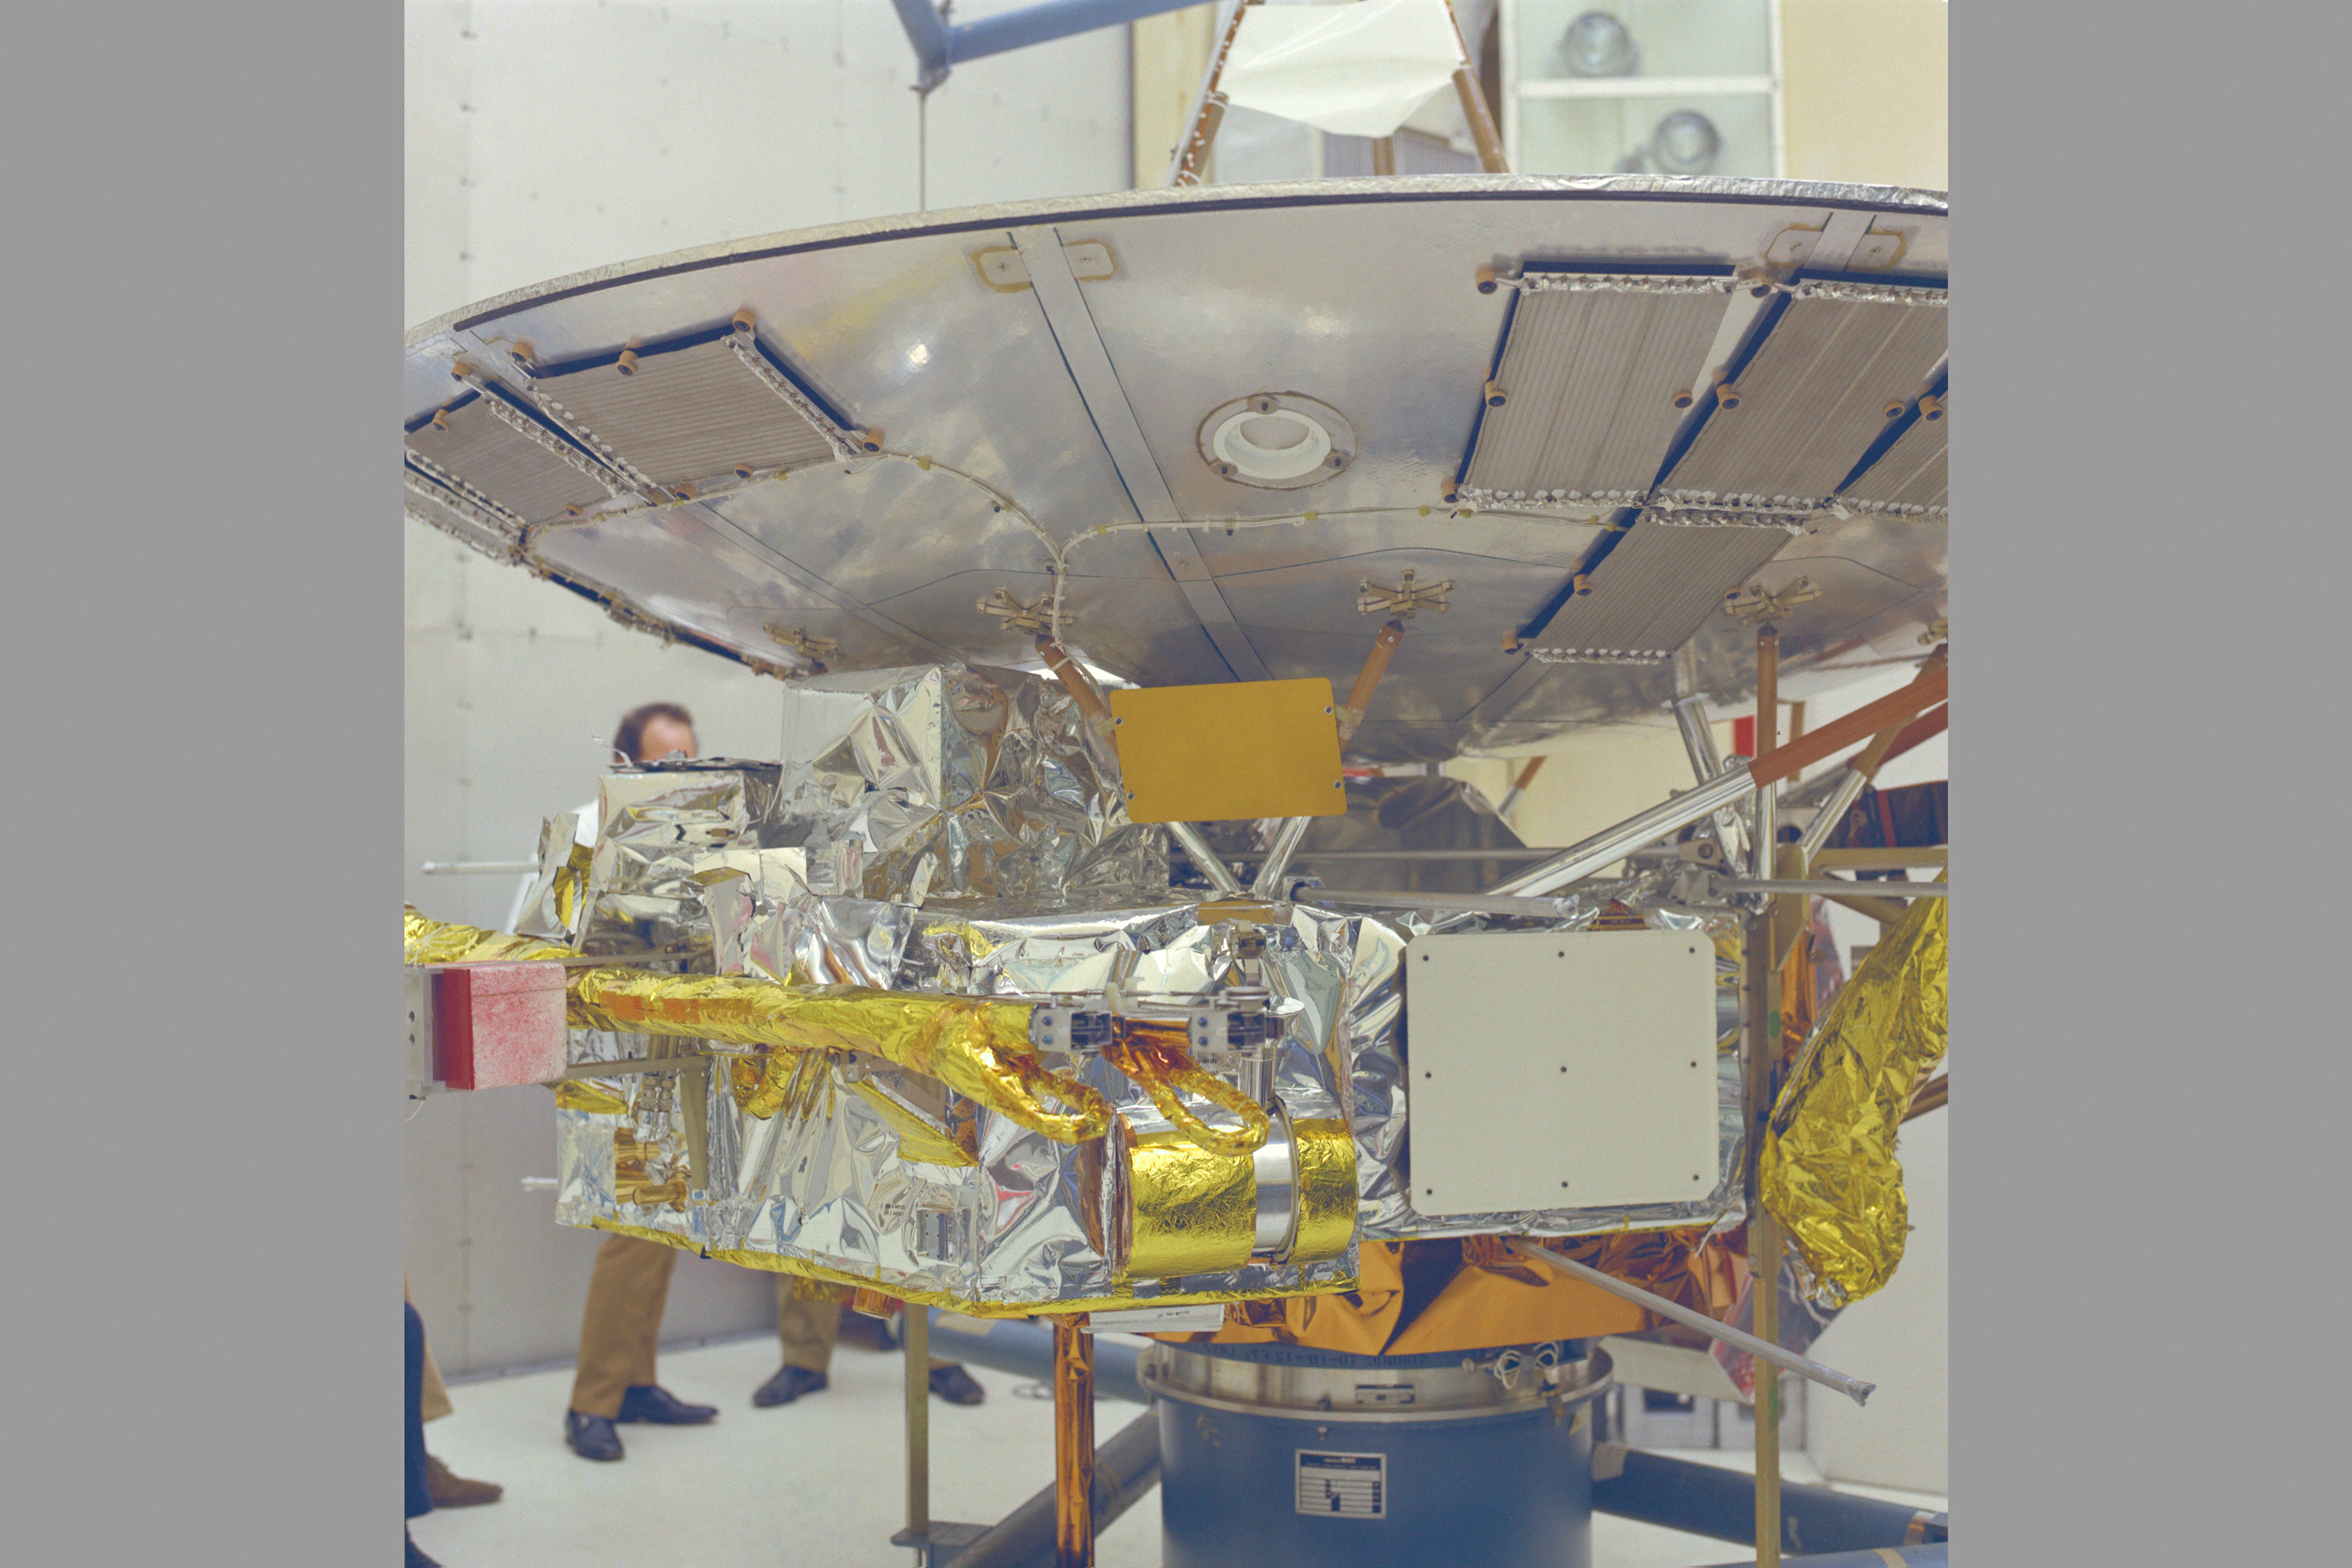 nasa pioneer mission 10 - photo #15